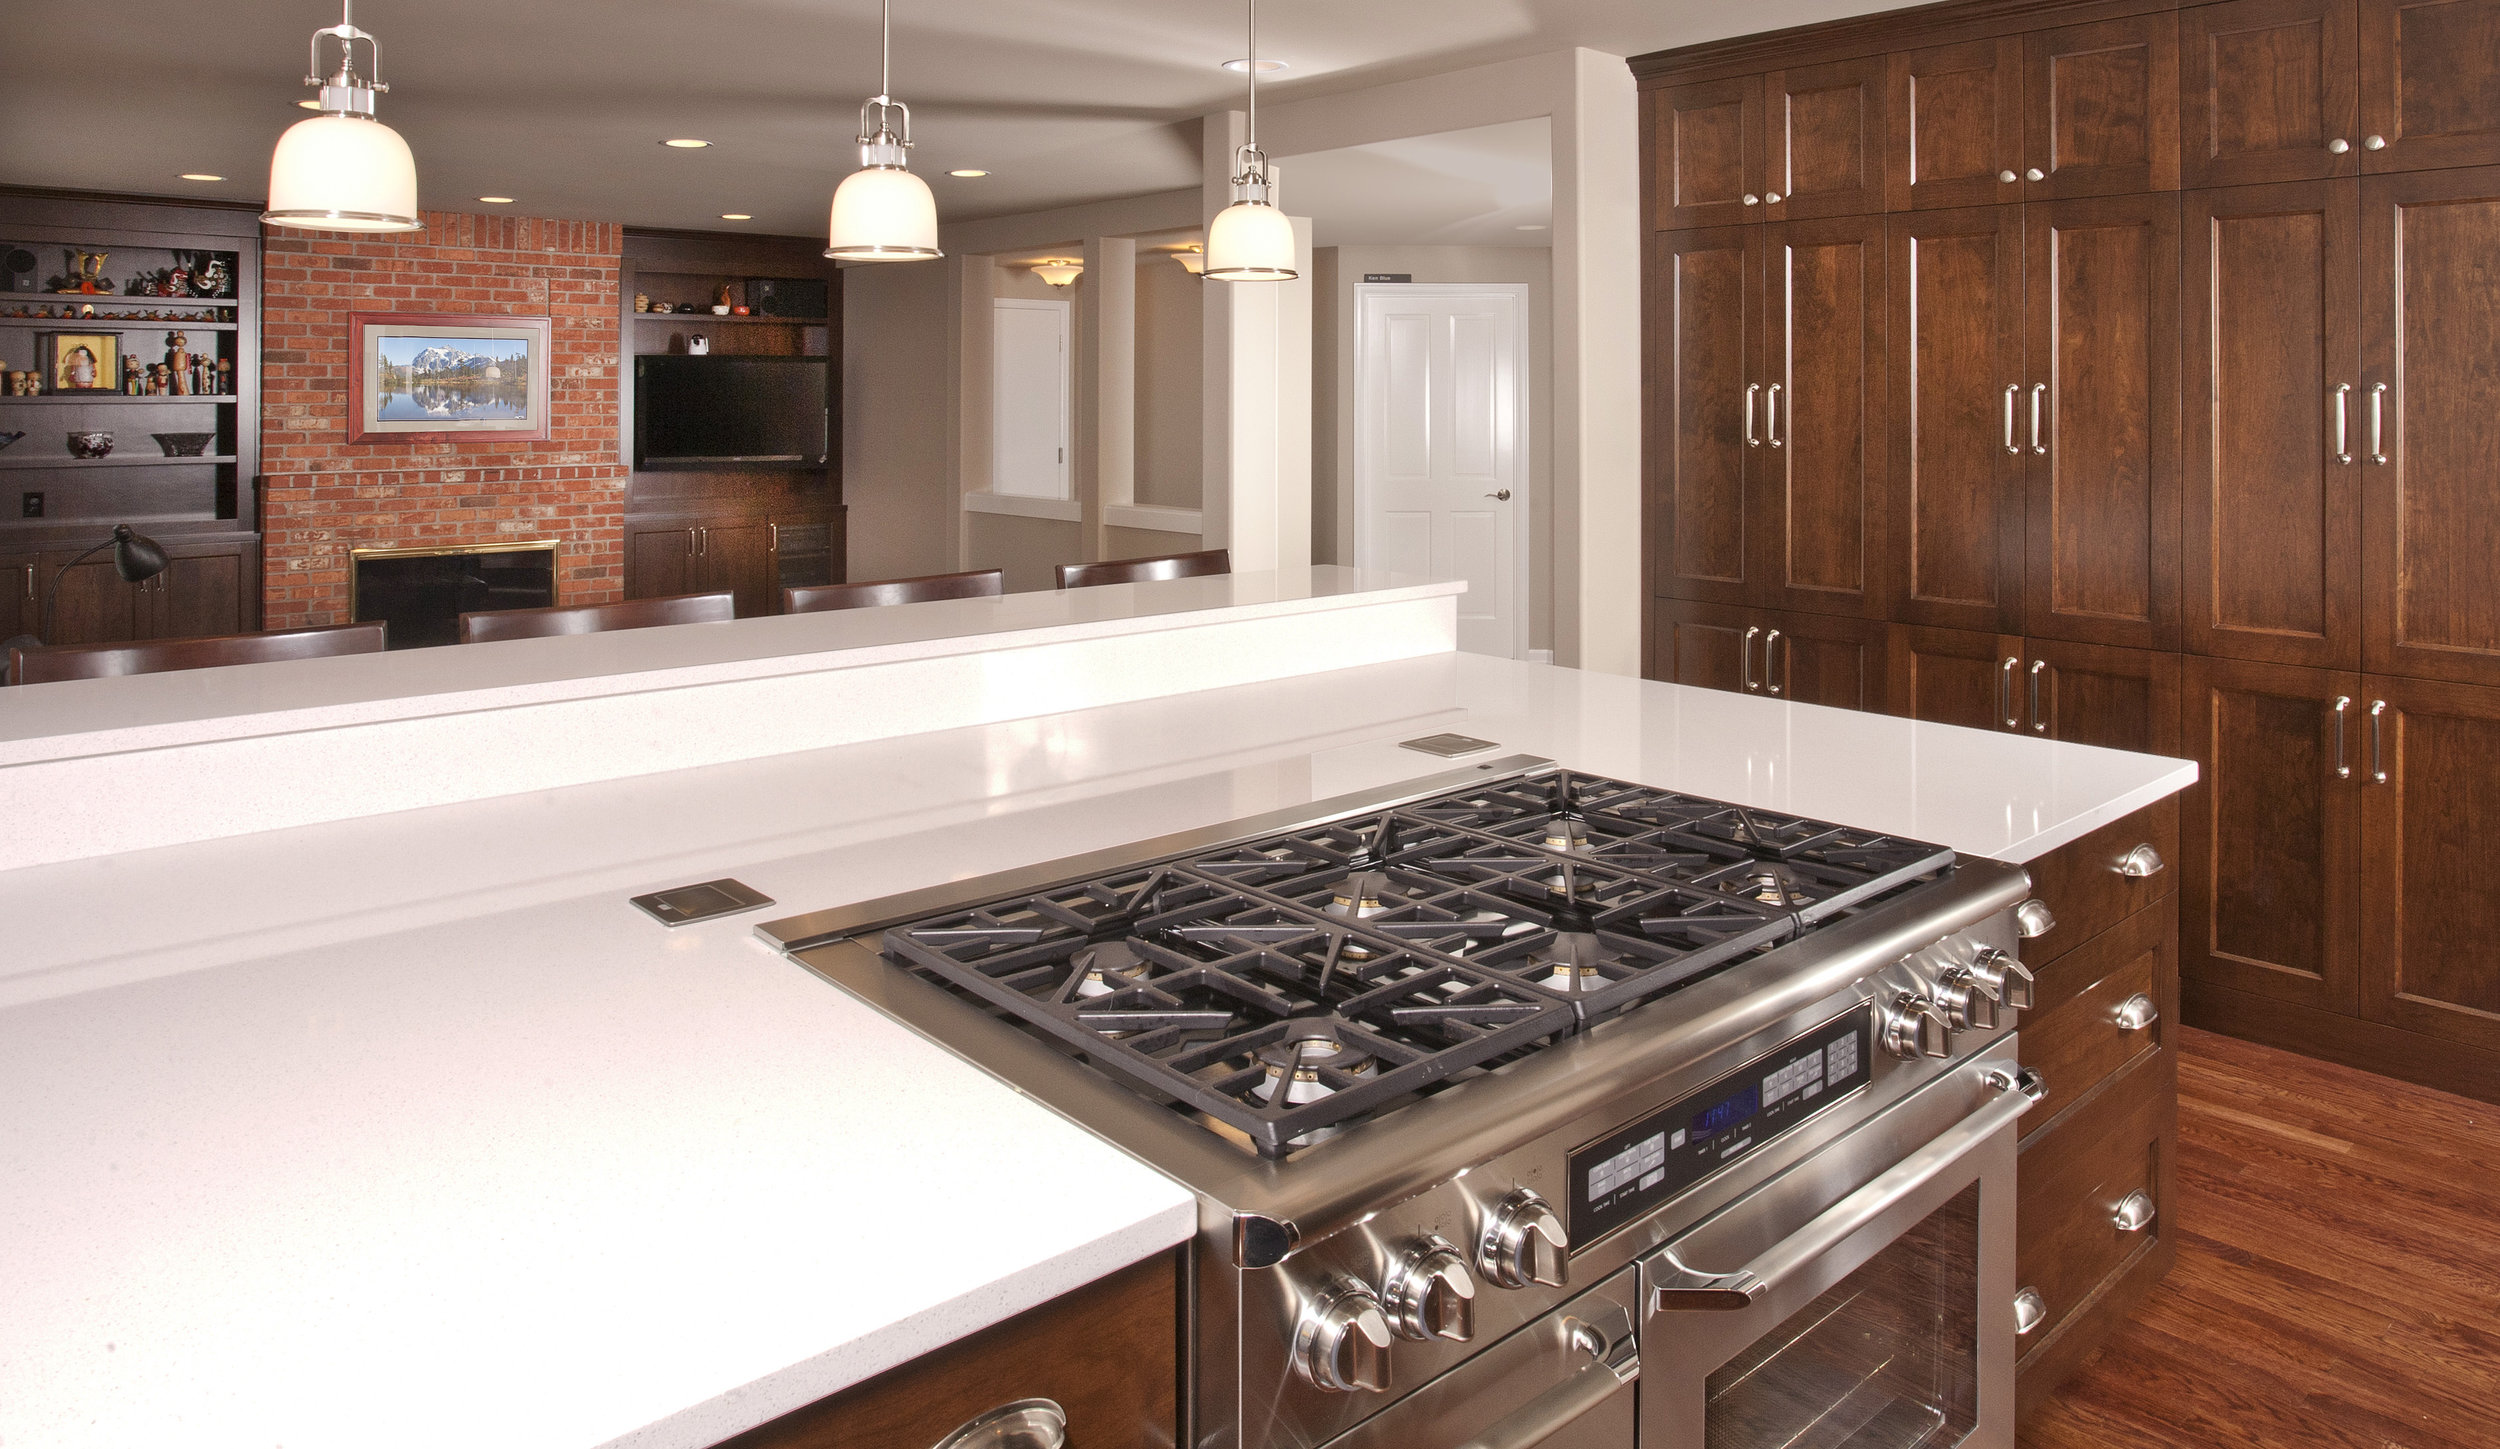 Woodinville Brookside Country Club Traditional Kitchen 4.jpg